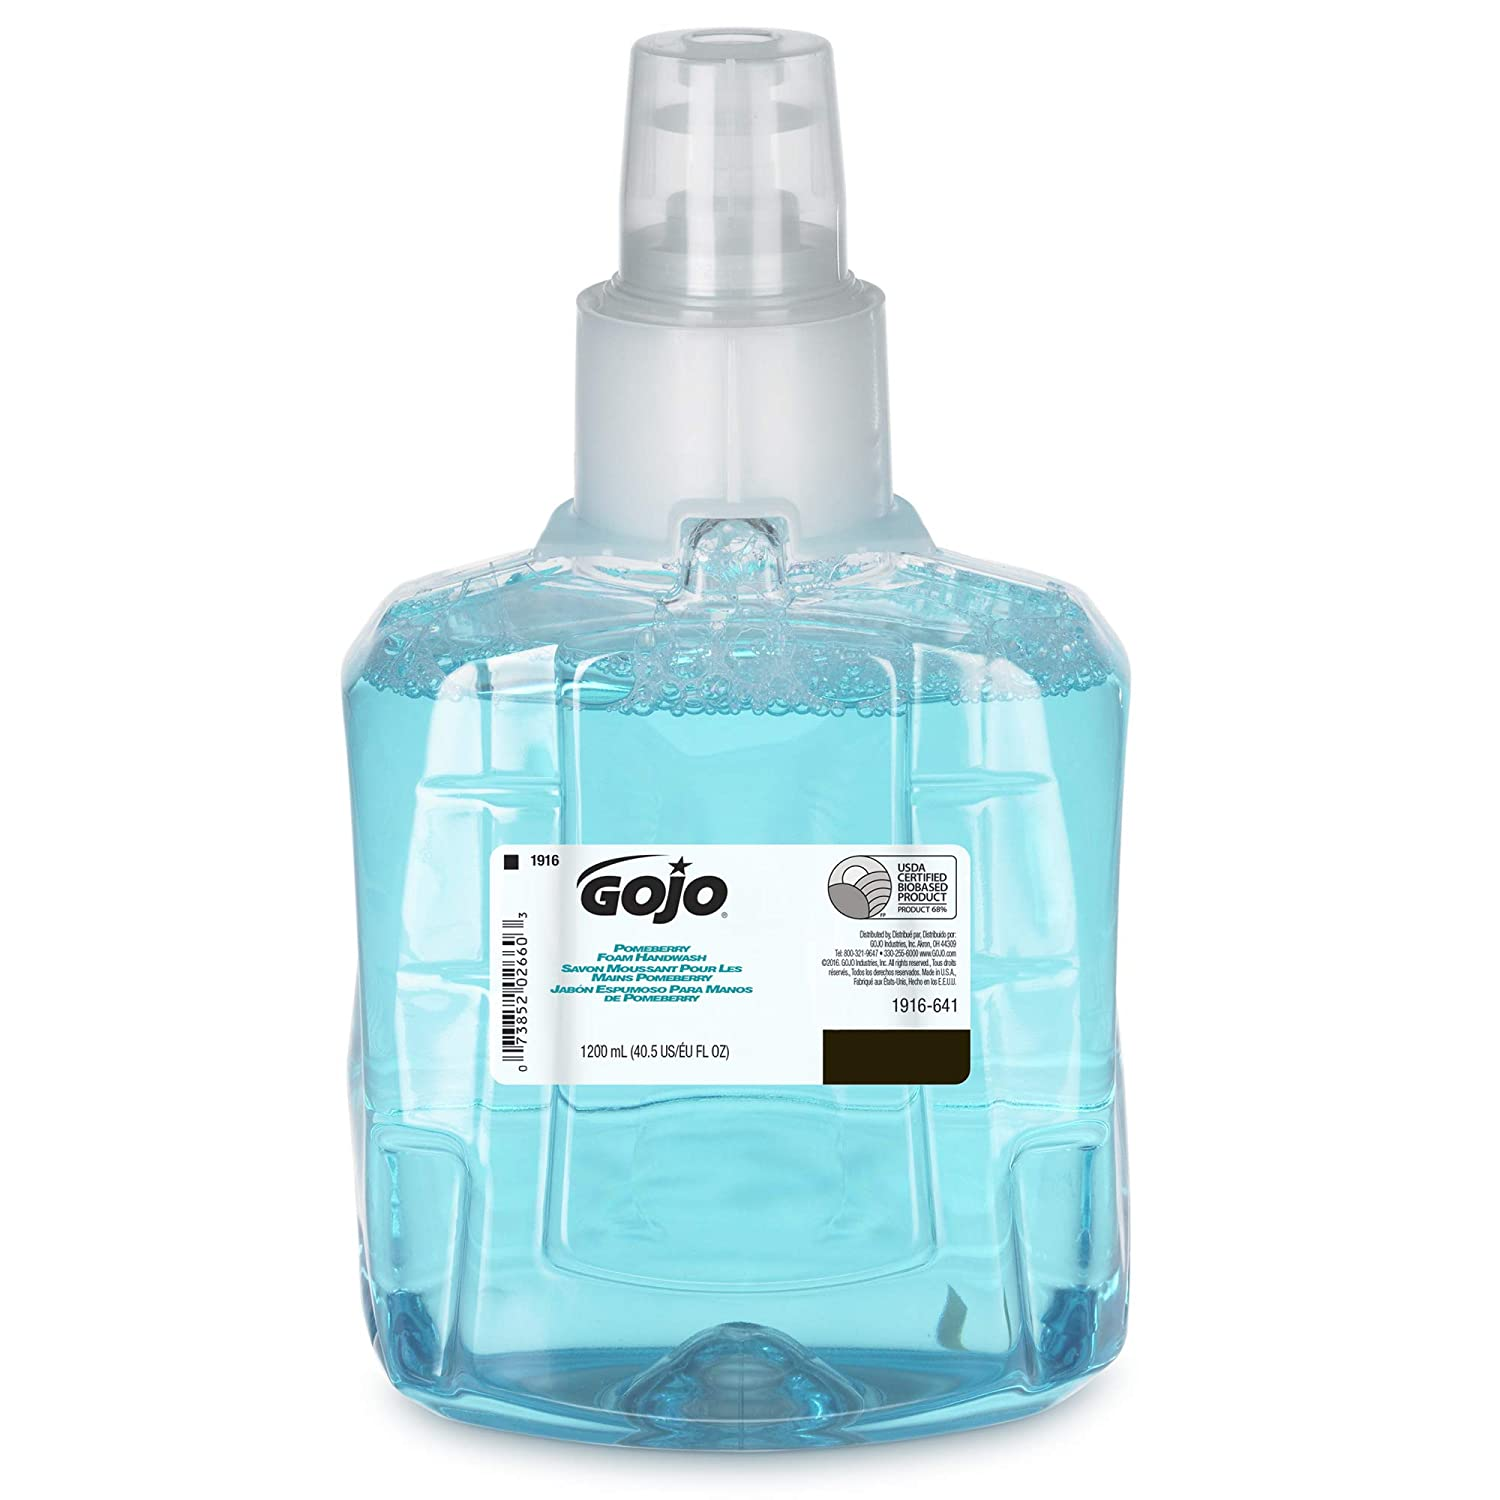 GOJO LTX-12 Pomeberry Foam Handwash, Pomeberry Fragrance, 1200 mL Handsoap Refill for GOJO LTX-12 Touch-Free Dispenser – 1916-06-EC